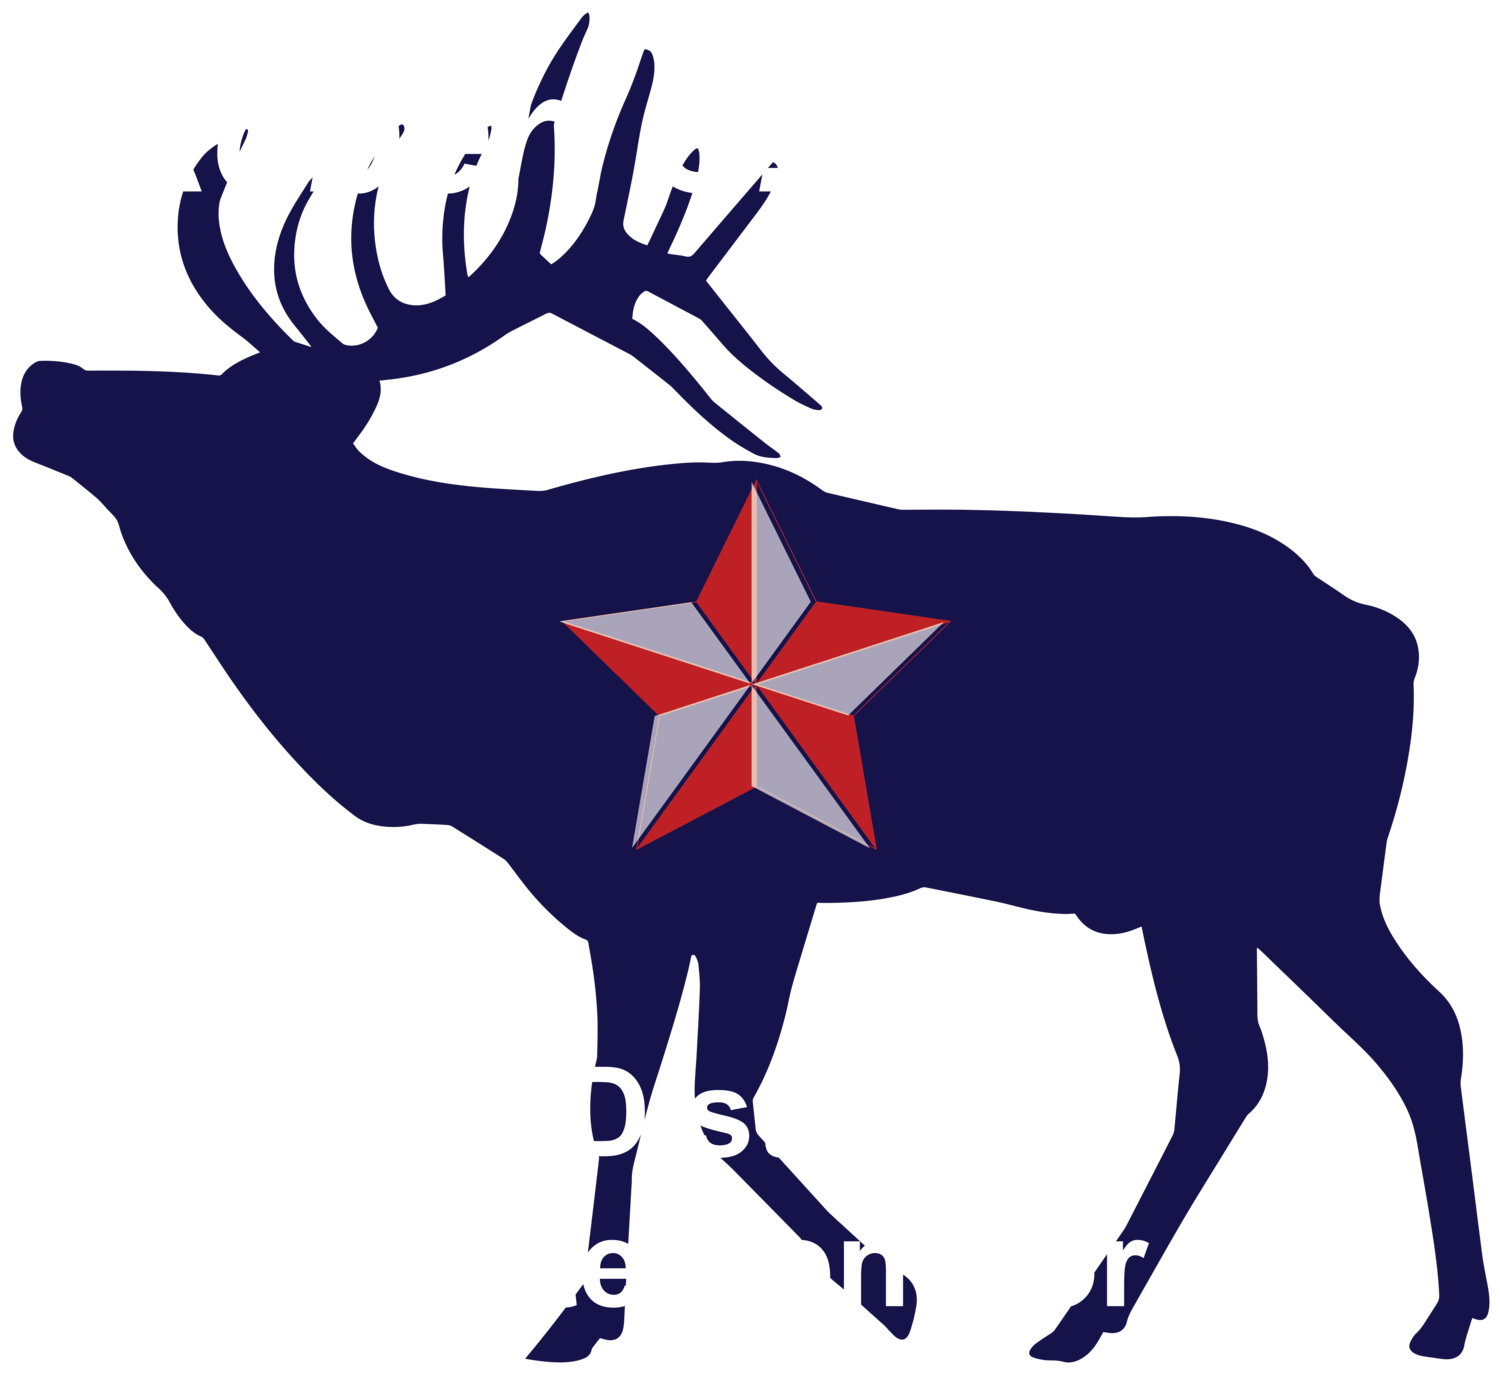 Robert  S. Nielsen For District 34 State Senator